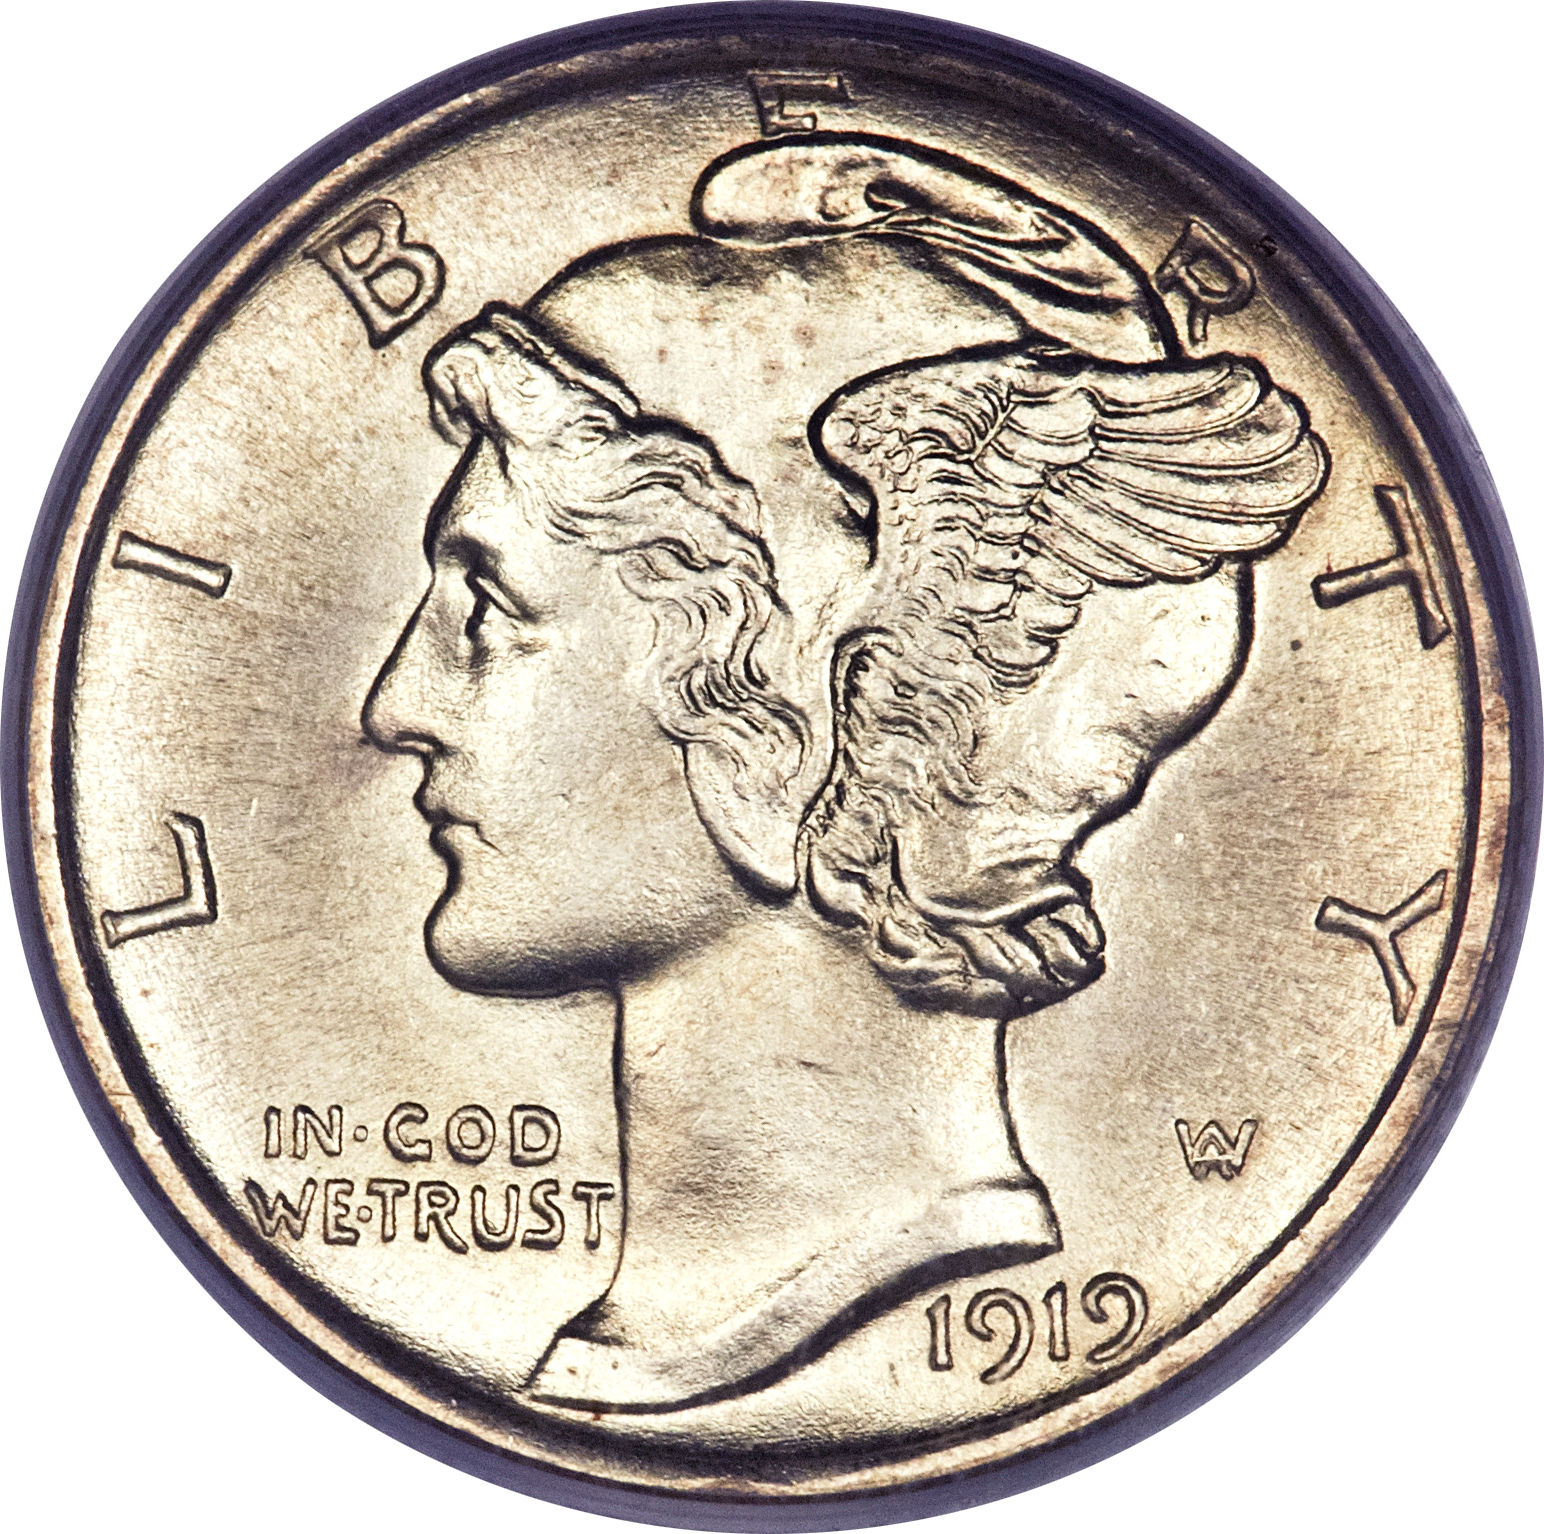 Barber/Liberty Head Dime Values (1892-1916) | CoinTrackers.com Project